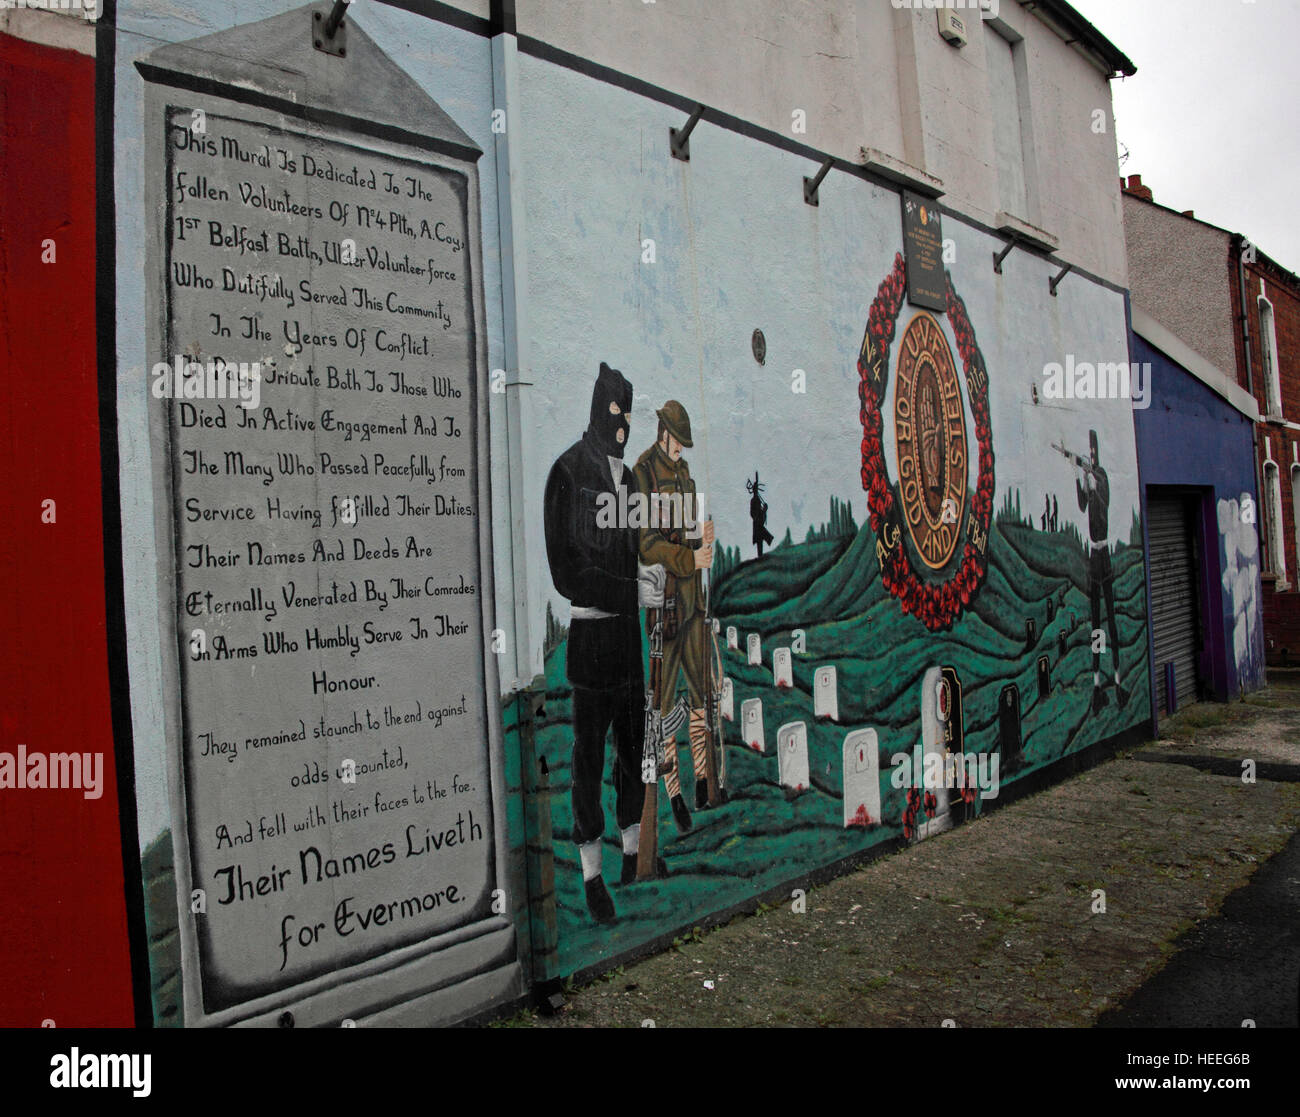 Mural,art,British,Union,wall,walls,gable end,gable,end,Northern,Irish,Republican,violence,para,military,paramilitary,fallen,Martyrs,martyr,street,rd,road,painting,painted,symbolism,Loyalist,culture,history,community,UVF Mural,four,platoon,no4,pltn,God,and,Ulster,No 4,Pltn,GoTonySmith,@HotpixUK,Tony,Smith,UK,GB,Great,Britain,United,Kingdom,Irish,British,Ireland,problem,with,problem with,issue with,NI,Northern,Northern Ireland,Belfast,City,Centre,Art,Artists,the,troubles,The Troubles,Good Friday Agreement,Peace,honour,painting,wall,walls,tribute,republicanism,Fight,Justice,West,Beal,feirste,martyrs,social,tour,tourism,tourists,urban,six,counties,6,backdrop,county,Antrim,Belfast streets,Buy Pictures of,Buy Images Of,Images of,Stock Images,Tony Smith,United Kingdom,Great Britain,British Isles